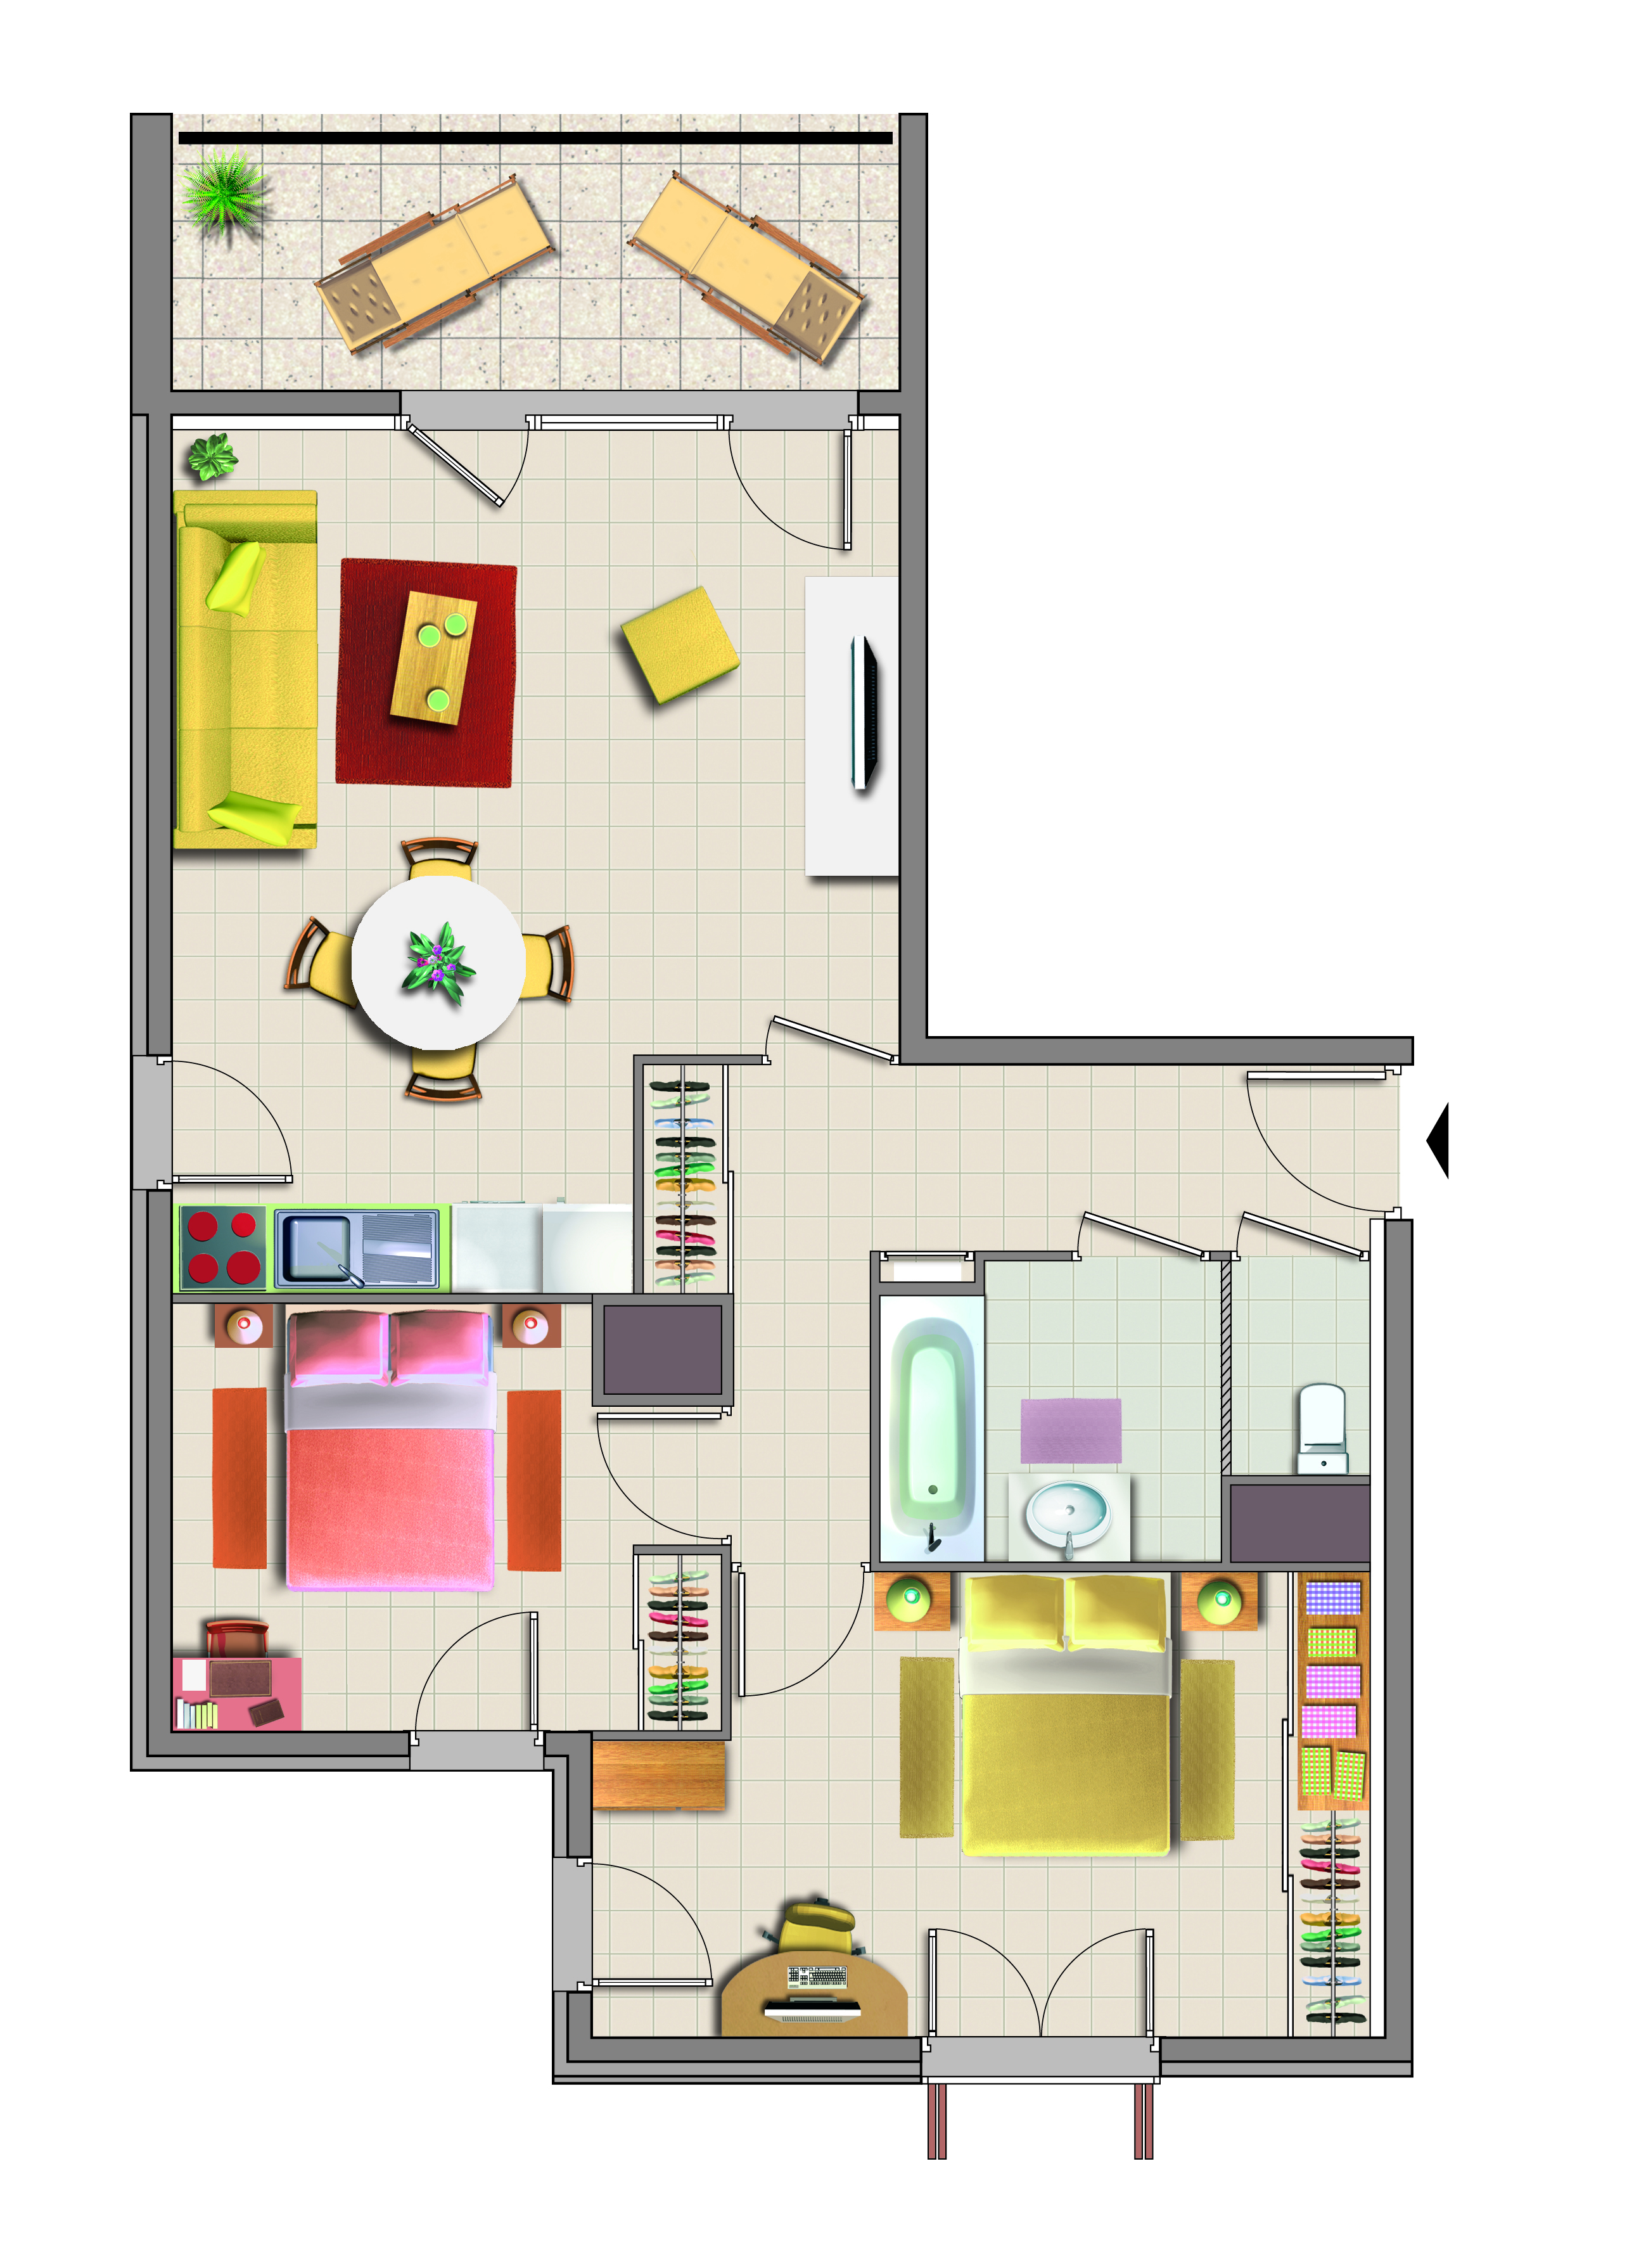 Superbe Awesome Beautiful Amazing Plan Appartement En Ligne Fantaisie Dessiner Plan  Maison Plan Appartement Ct Maison Dessiner Plan With Dessiner Plan  Appartement Inspirations De Conception